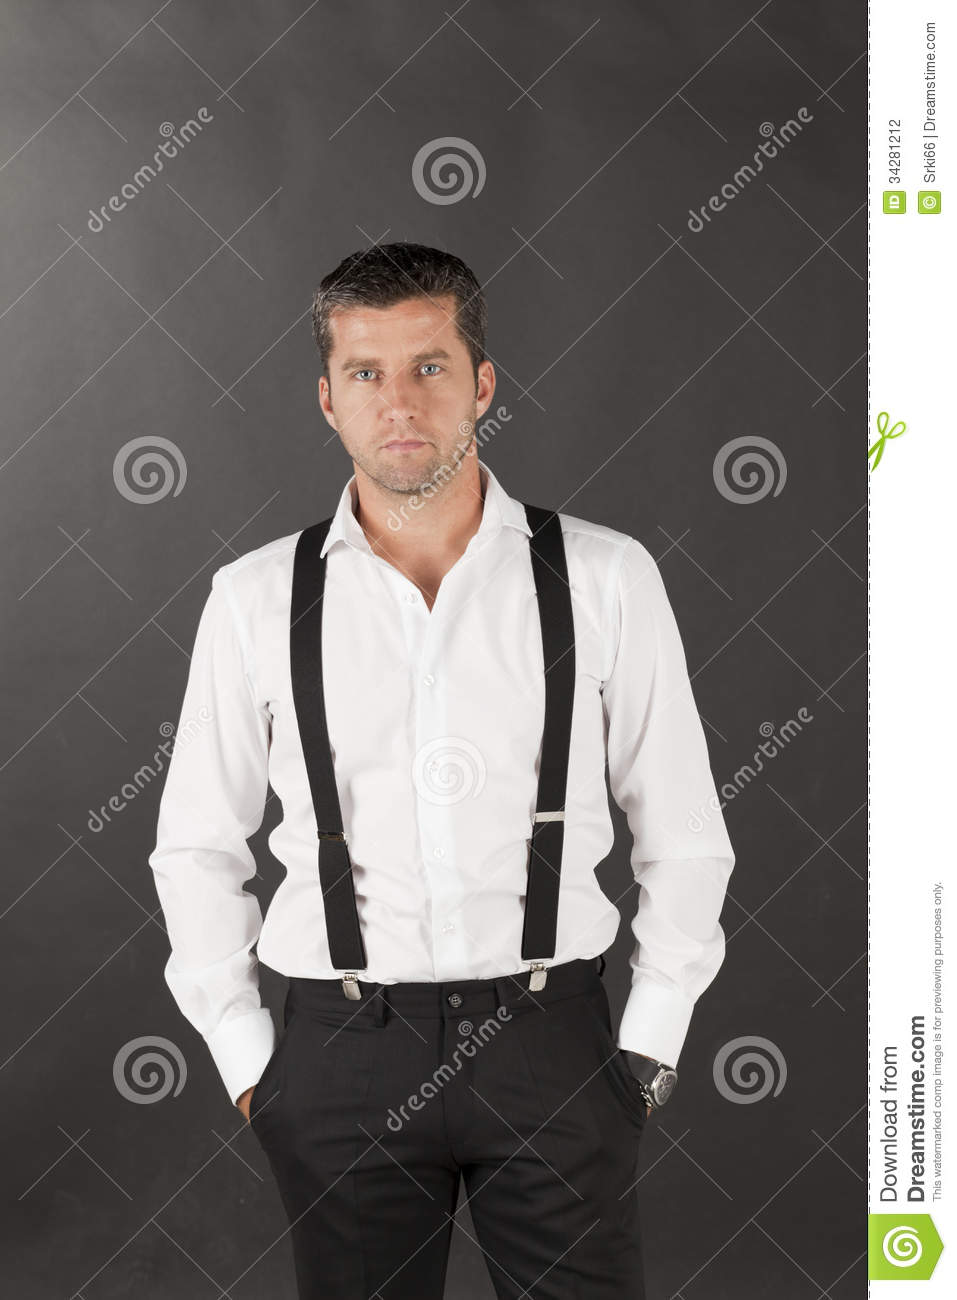 Men in white shirts and suspenders stock photo image for Man in white shirt